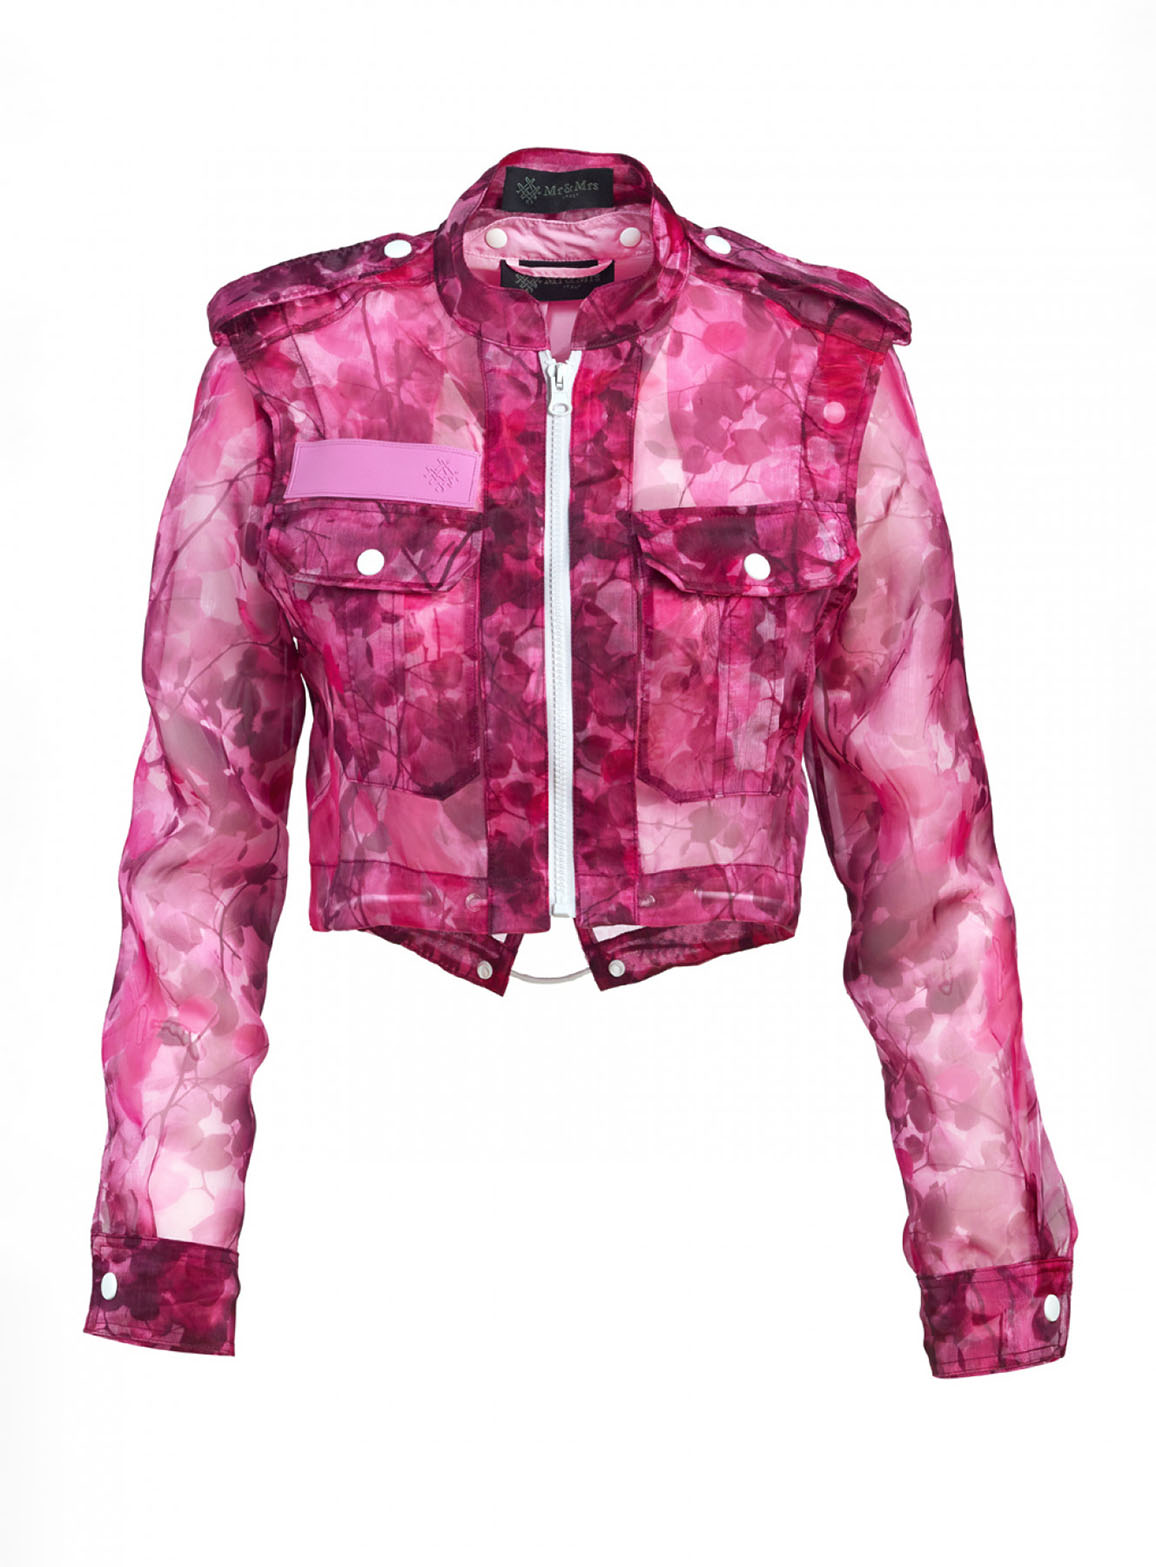 Jacket in blossom camouflage